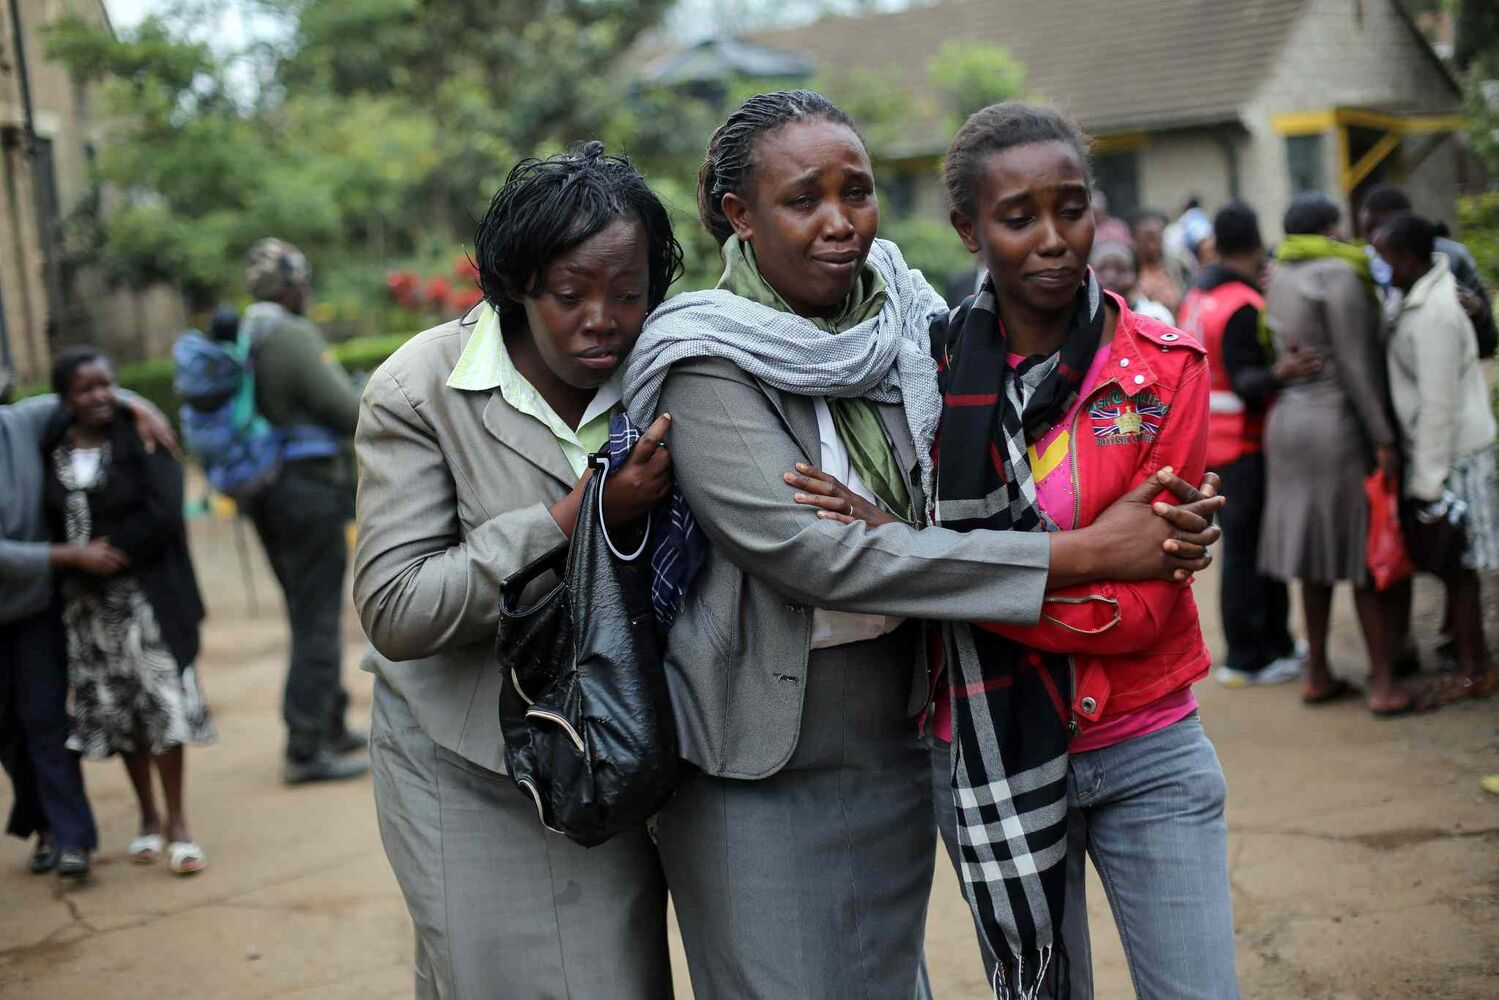 Relatives of Johnny Mutinda Musango, 48, weep after identifying his body at the city morgue in Nairobi, Kenya, Tuesday. Musango was one of the victims of the Westgate Mall hostage siege. Kenyan security forces were still combing the Mall on the fourth day of the siege by al-Qaida-linked terrorists.